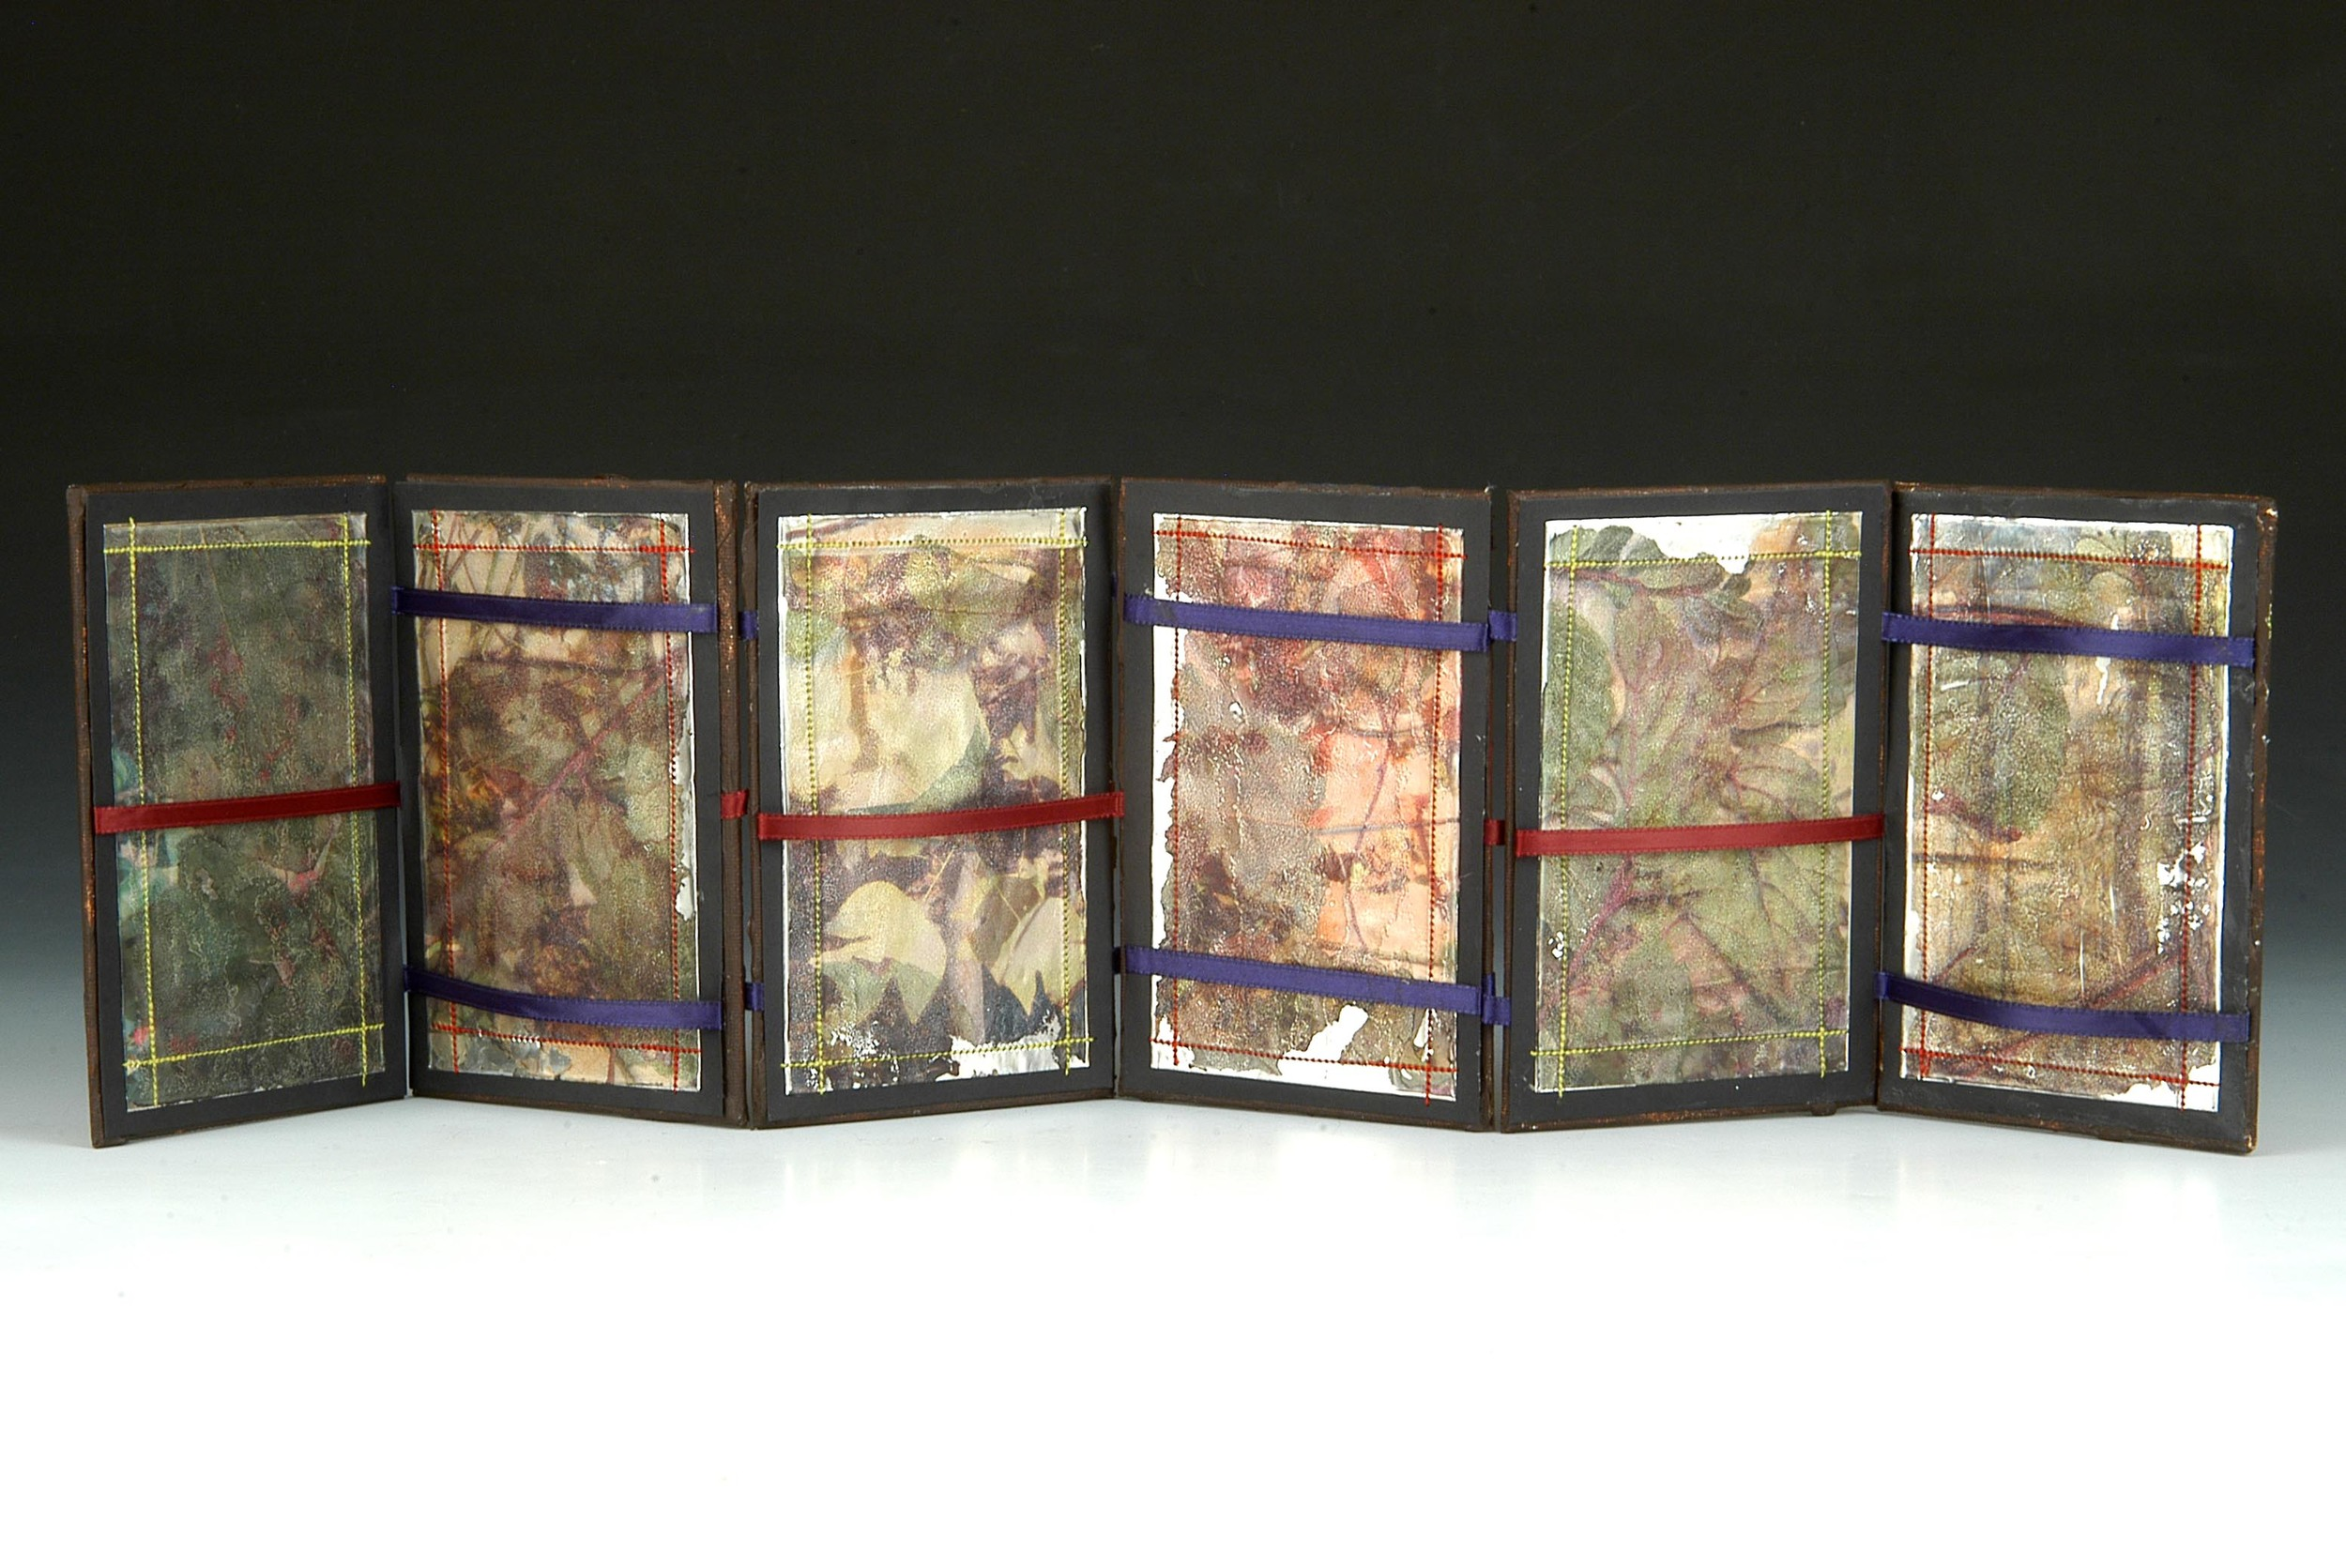 Jacob's Ladder Book , MaryLea Harris, Mixed Media with Emulstion Transfers